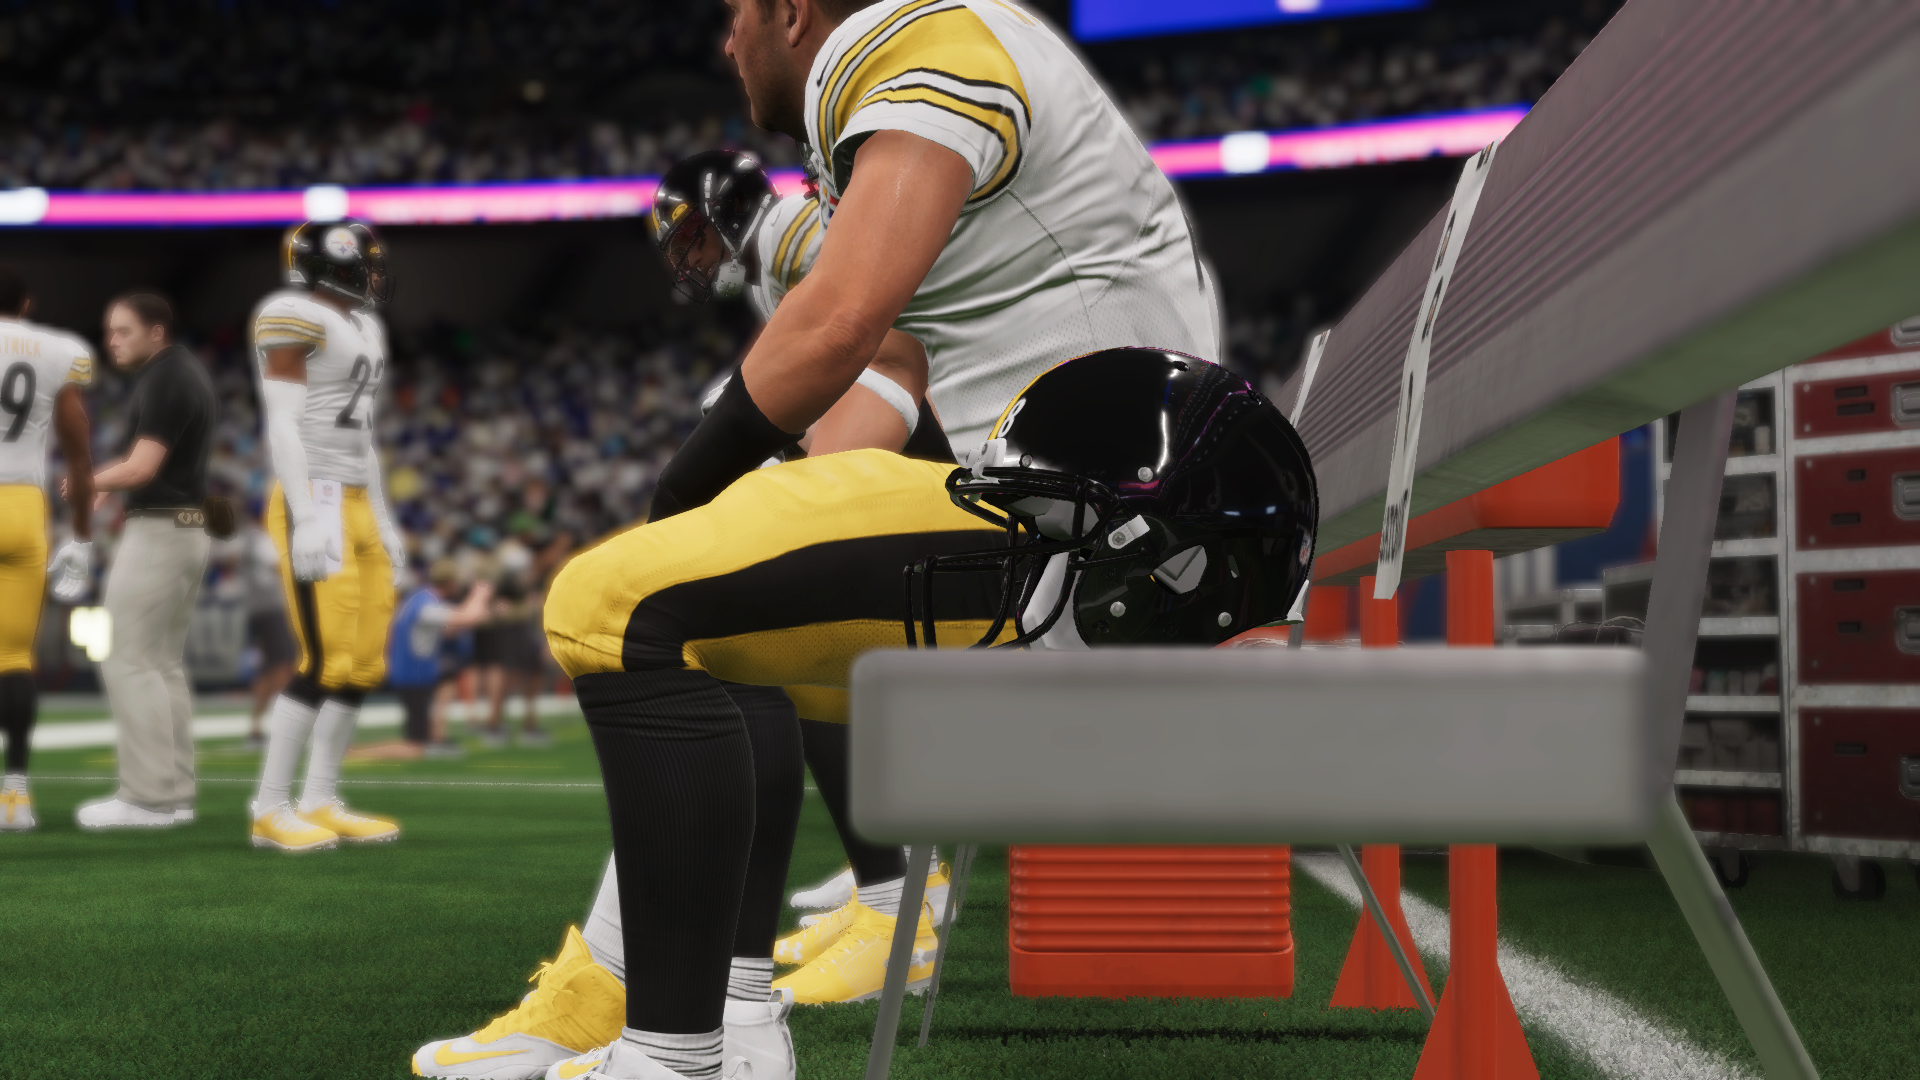 Steelers win in the Madden 21 Week 1 simulation